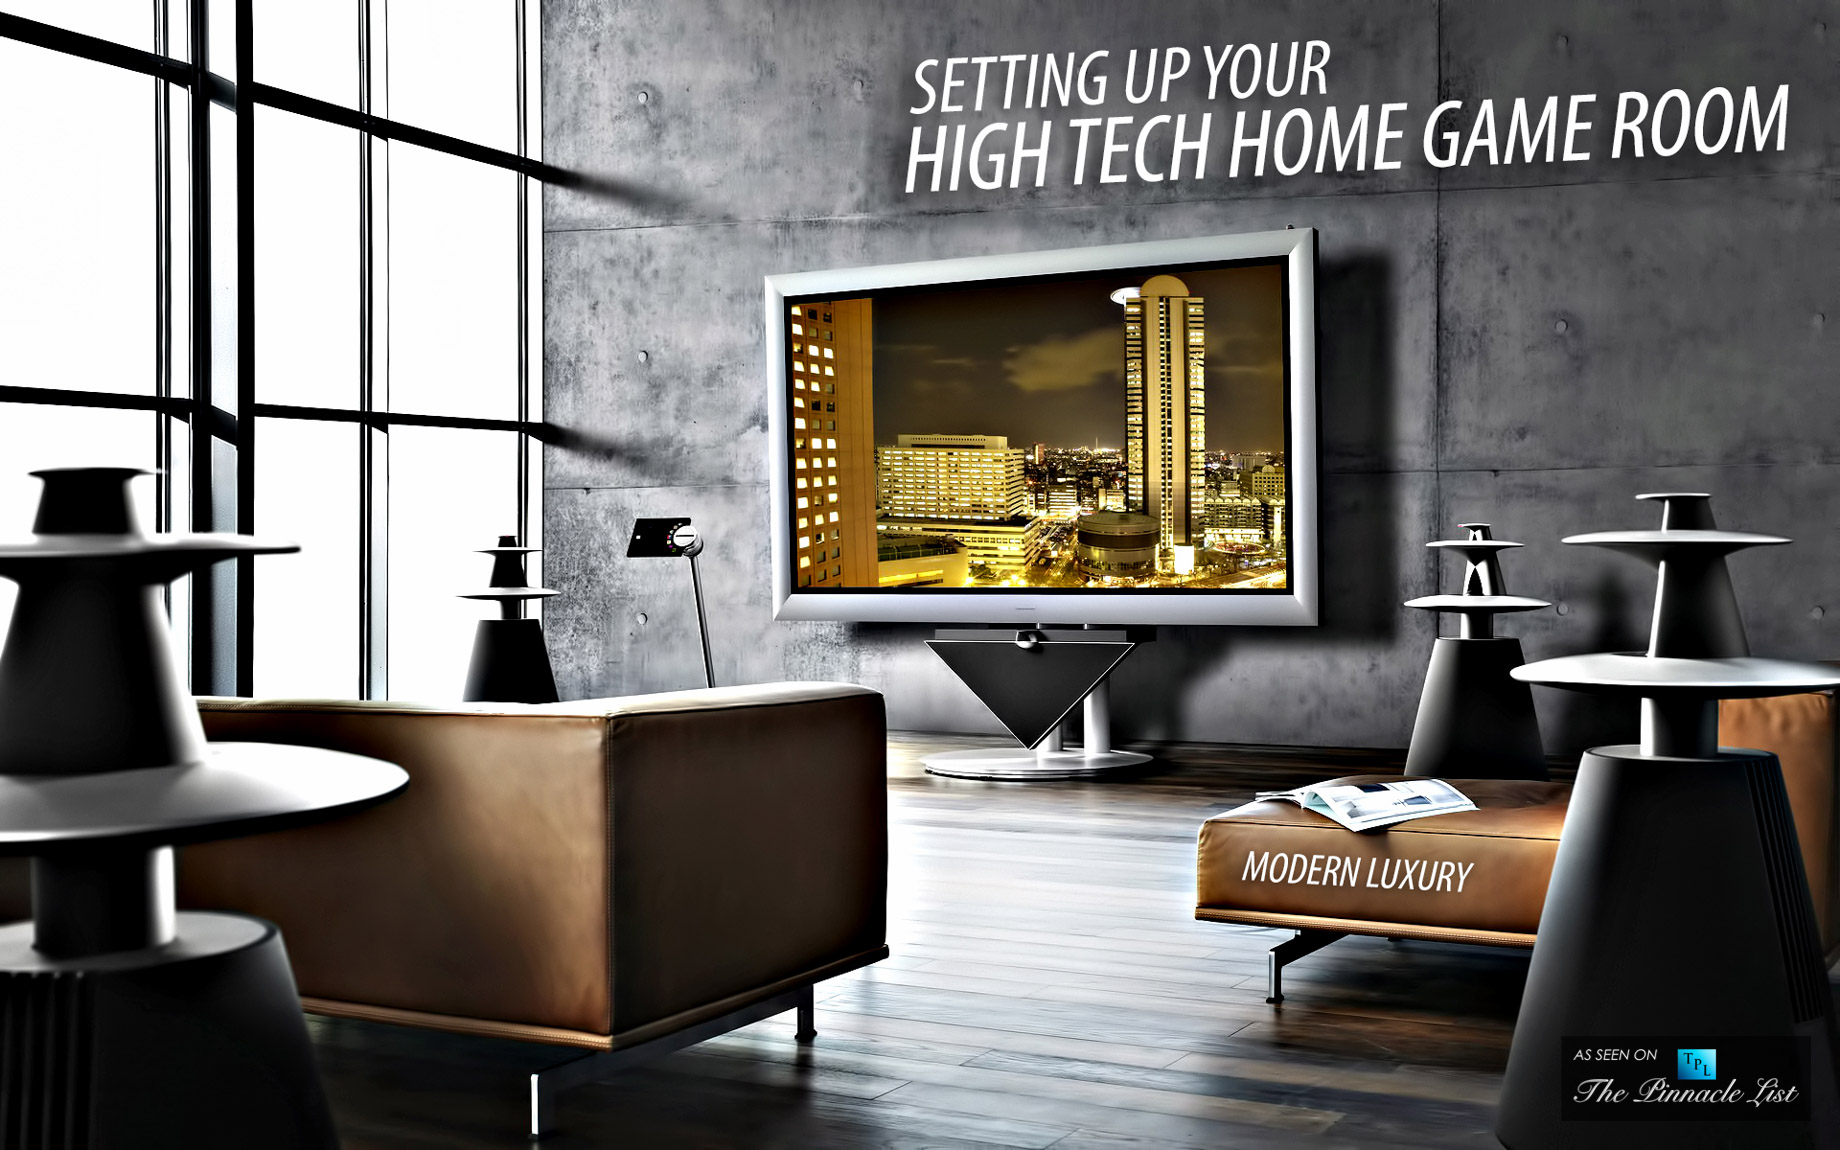 Living in Modern Luxury - Setting Up Your High-Tech Home Game Room